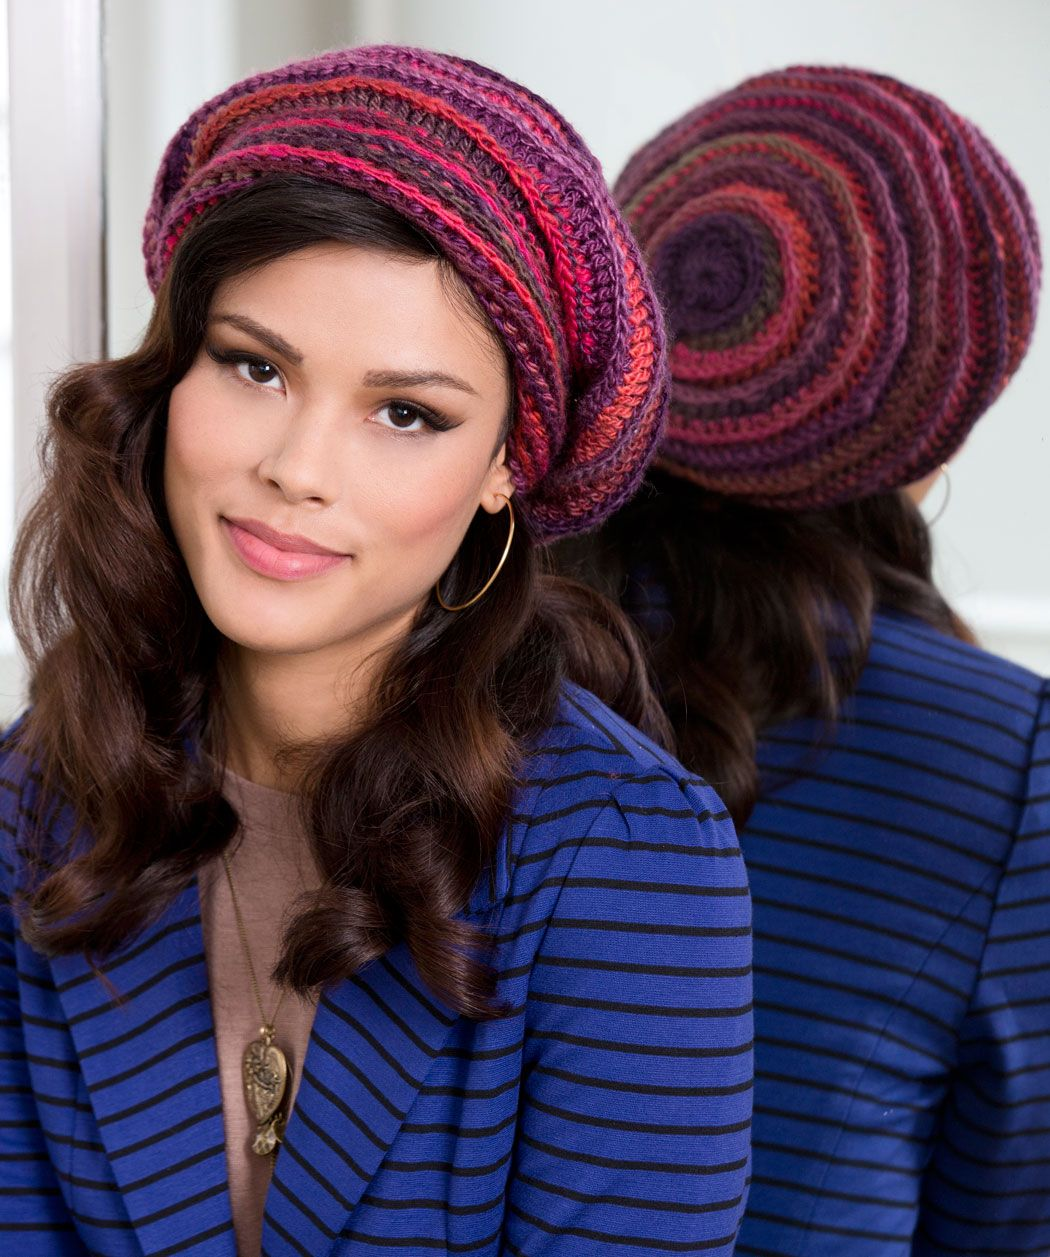 Slouchy Beanie | Relay for Life - Chemo Caps | Pinterest | Free ...